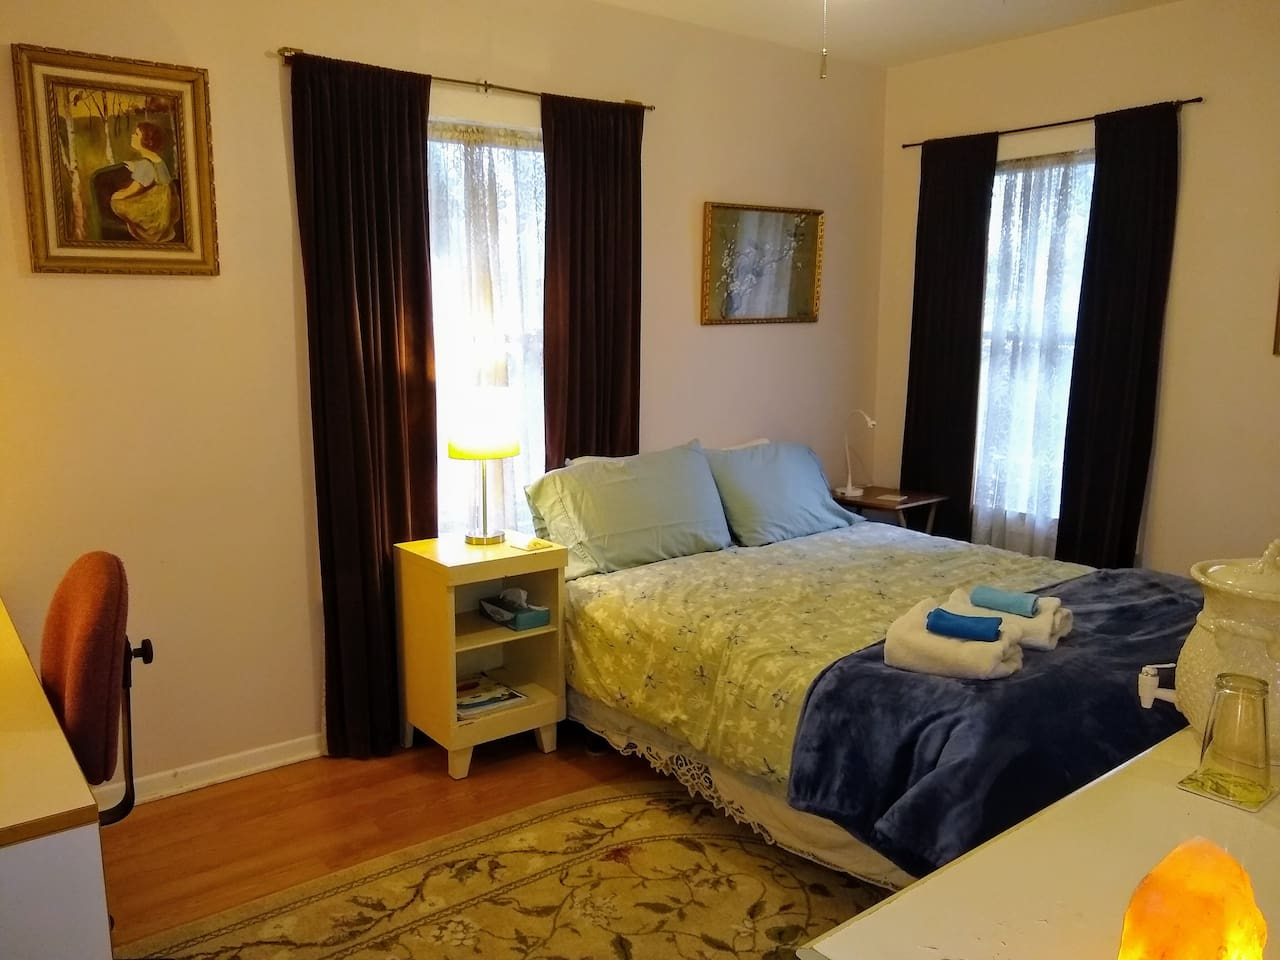 PEACEFUL Front Bedroom, 120 sq ft.  Queen bed with room for additional comfy, twin floor mattress if tight floor space is OK. Large filtered water dispenser on dresser.